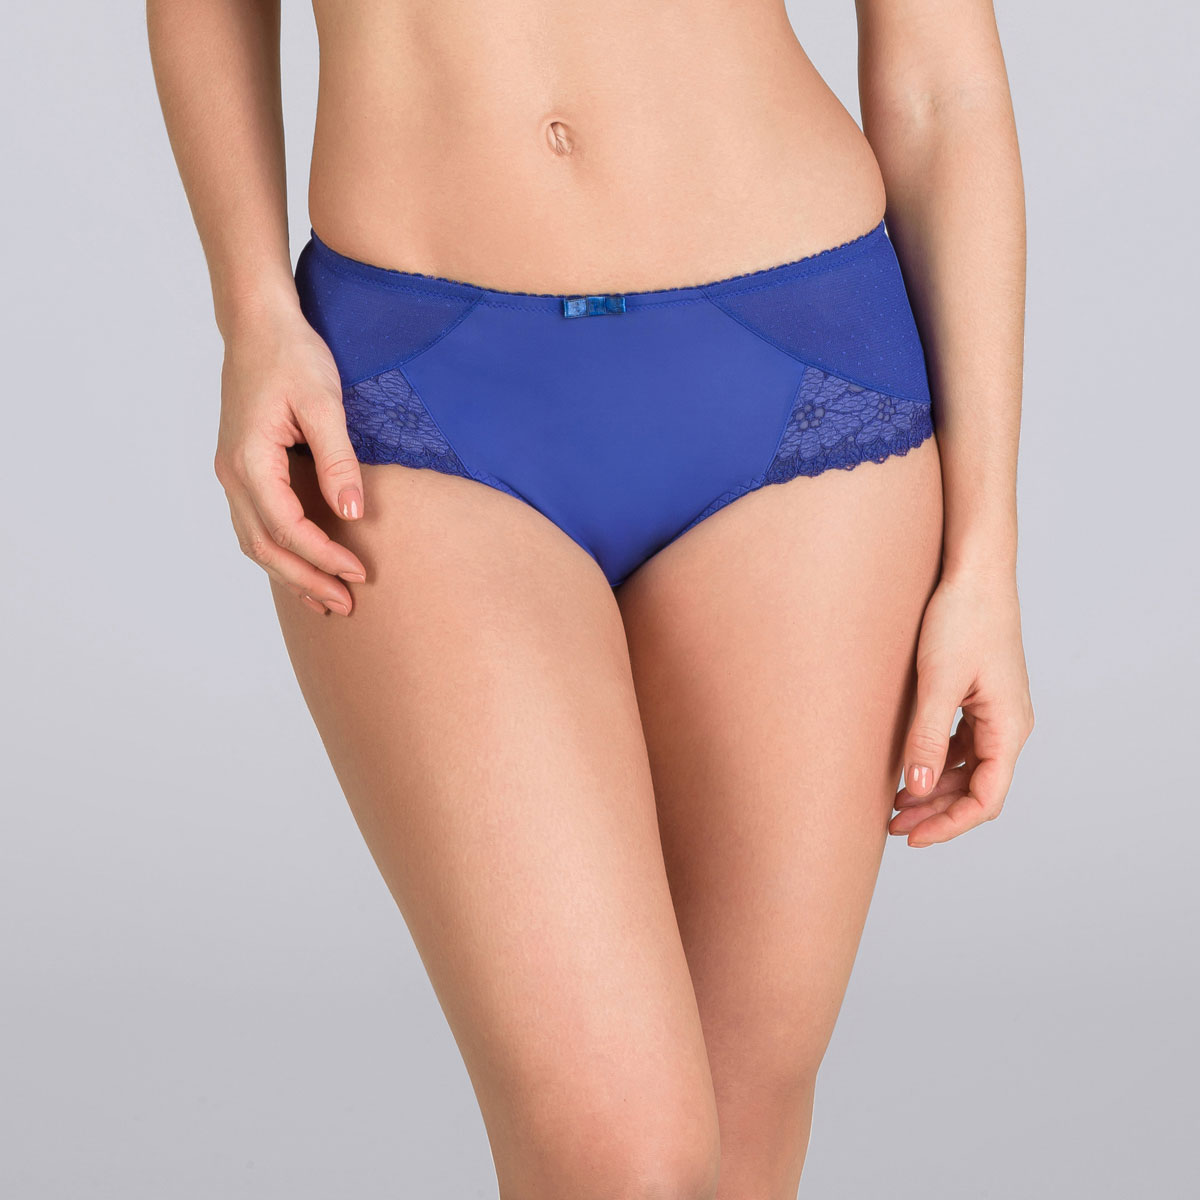 Midi Brief in Dark Blue – Classic Lace Support-PLAYTEX